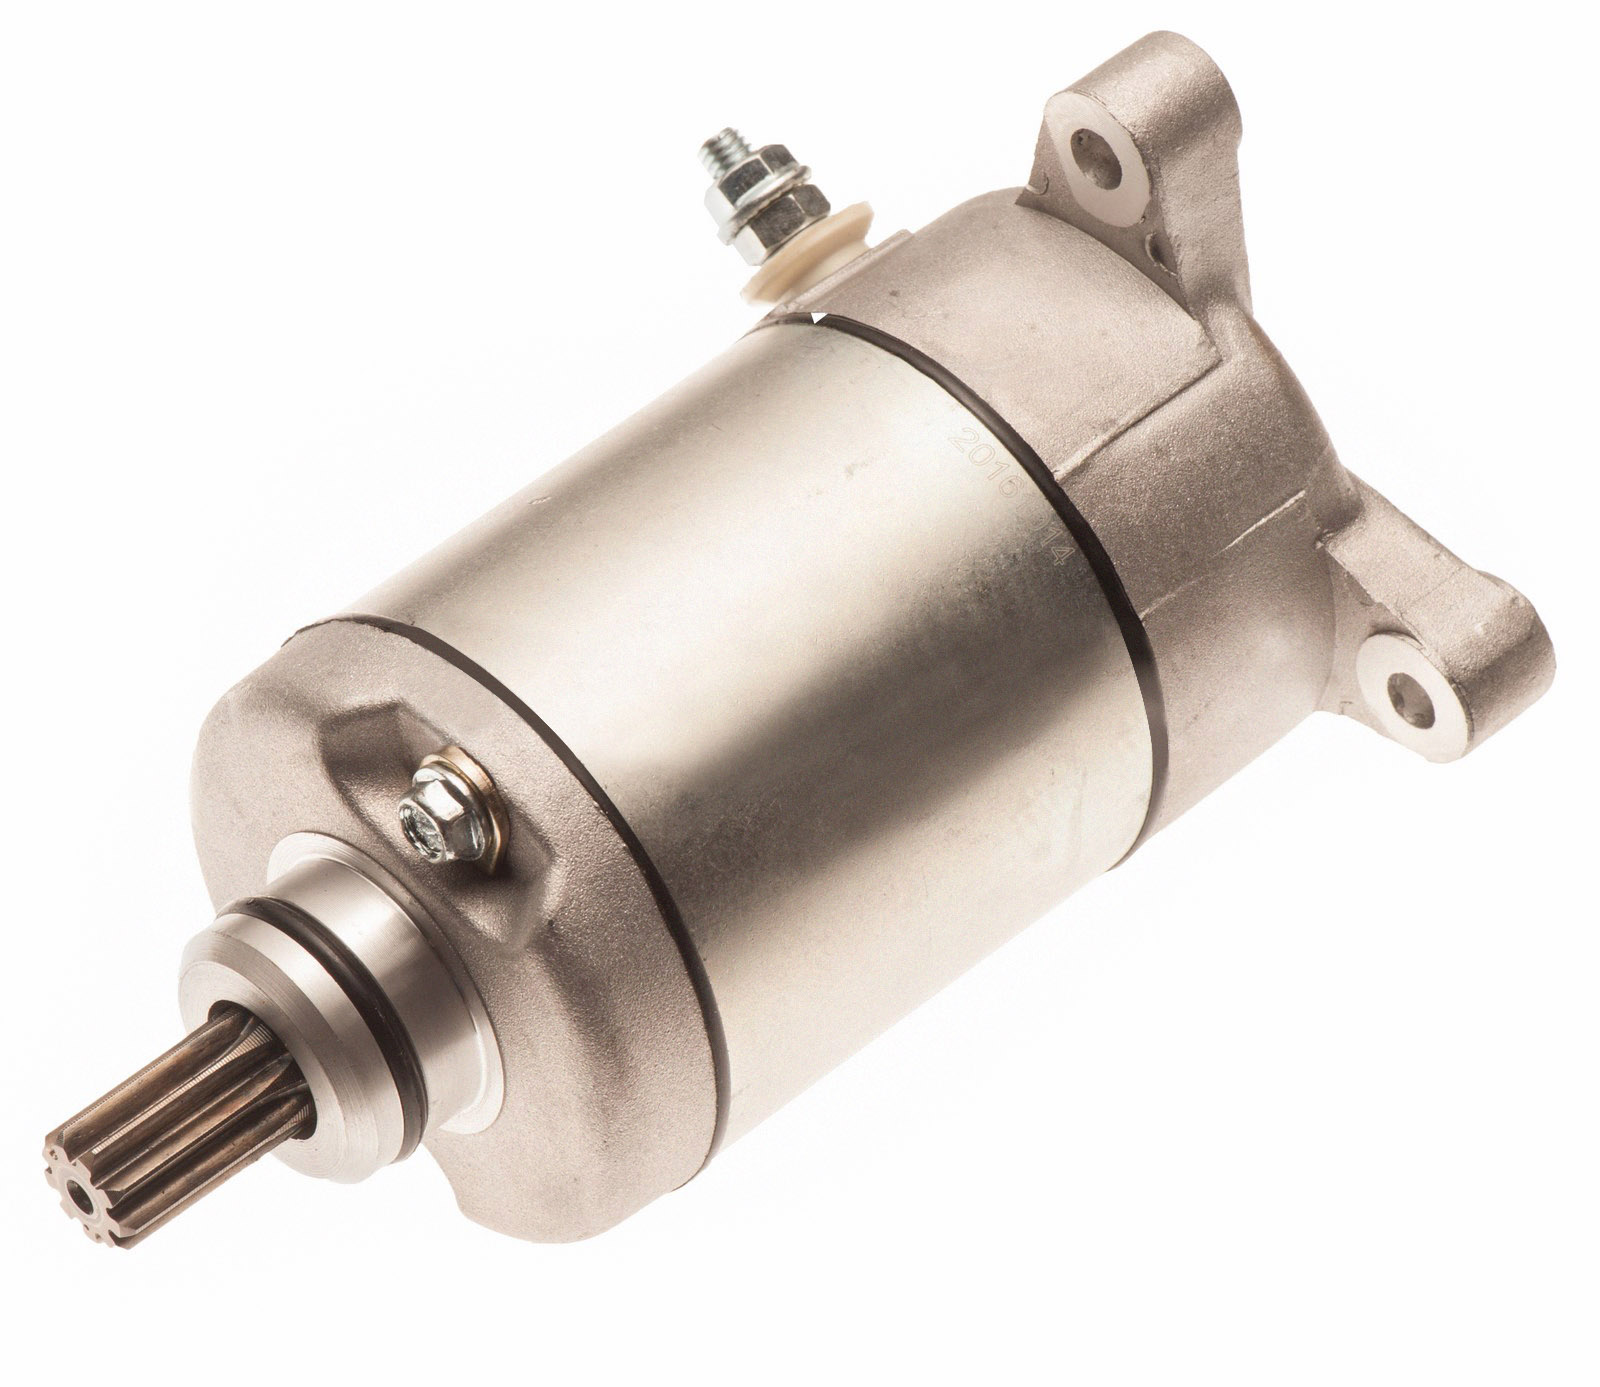 Details about Polaris ATV Starter Motor 3084981 3090188 Sportsman Scrambler  Worker 335 400 500